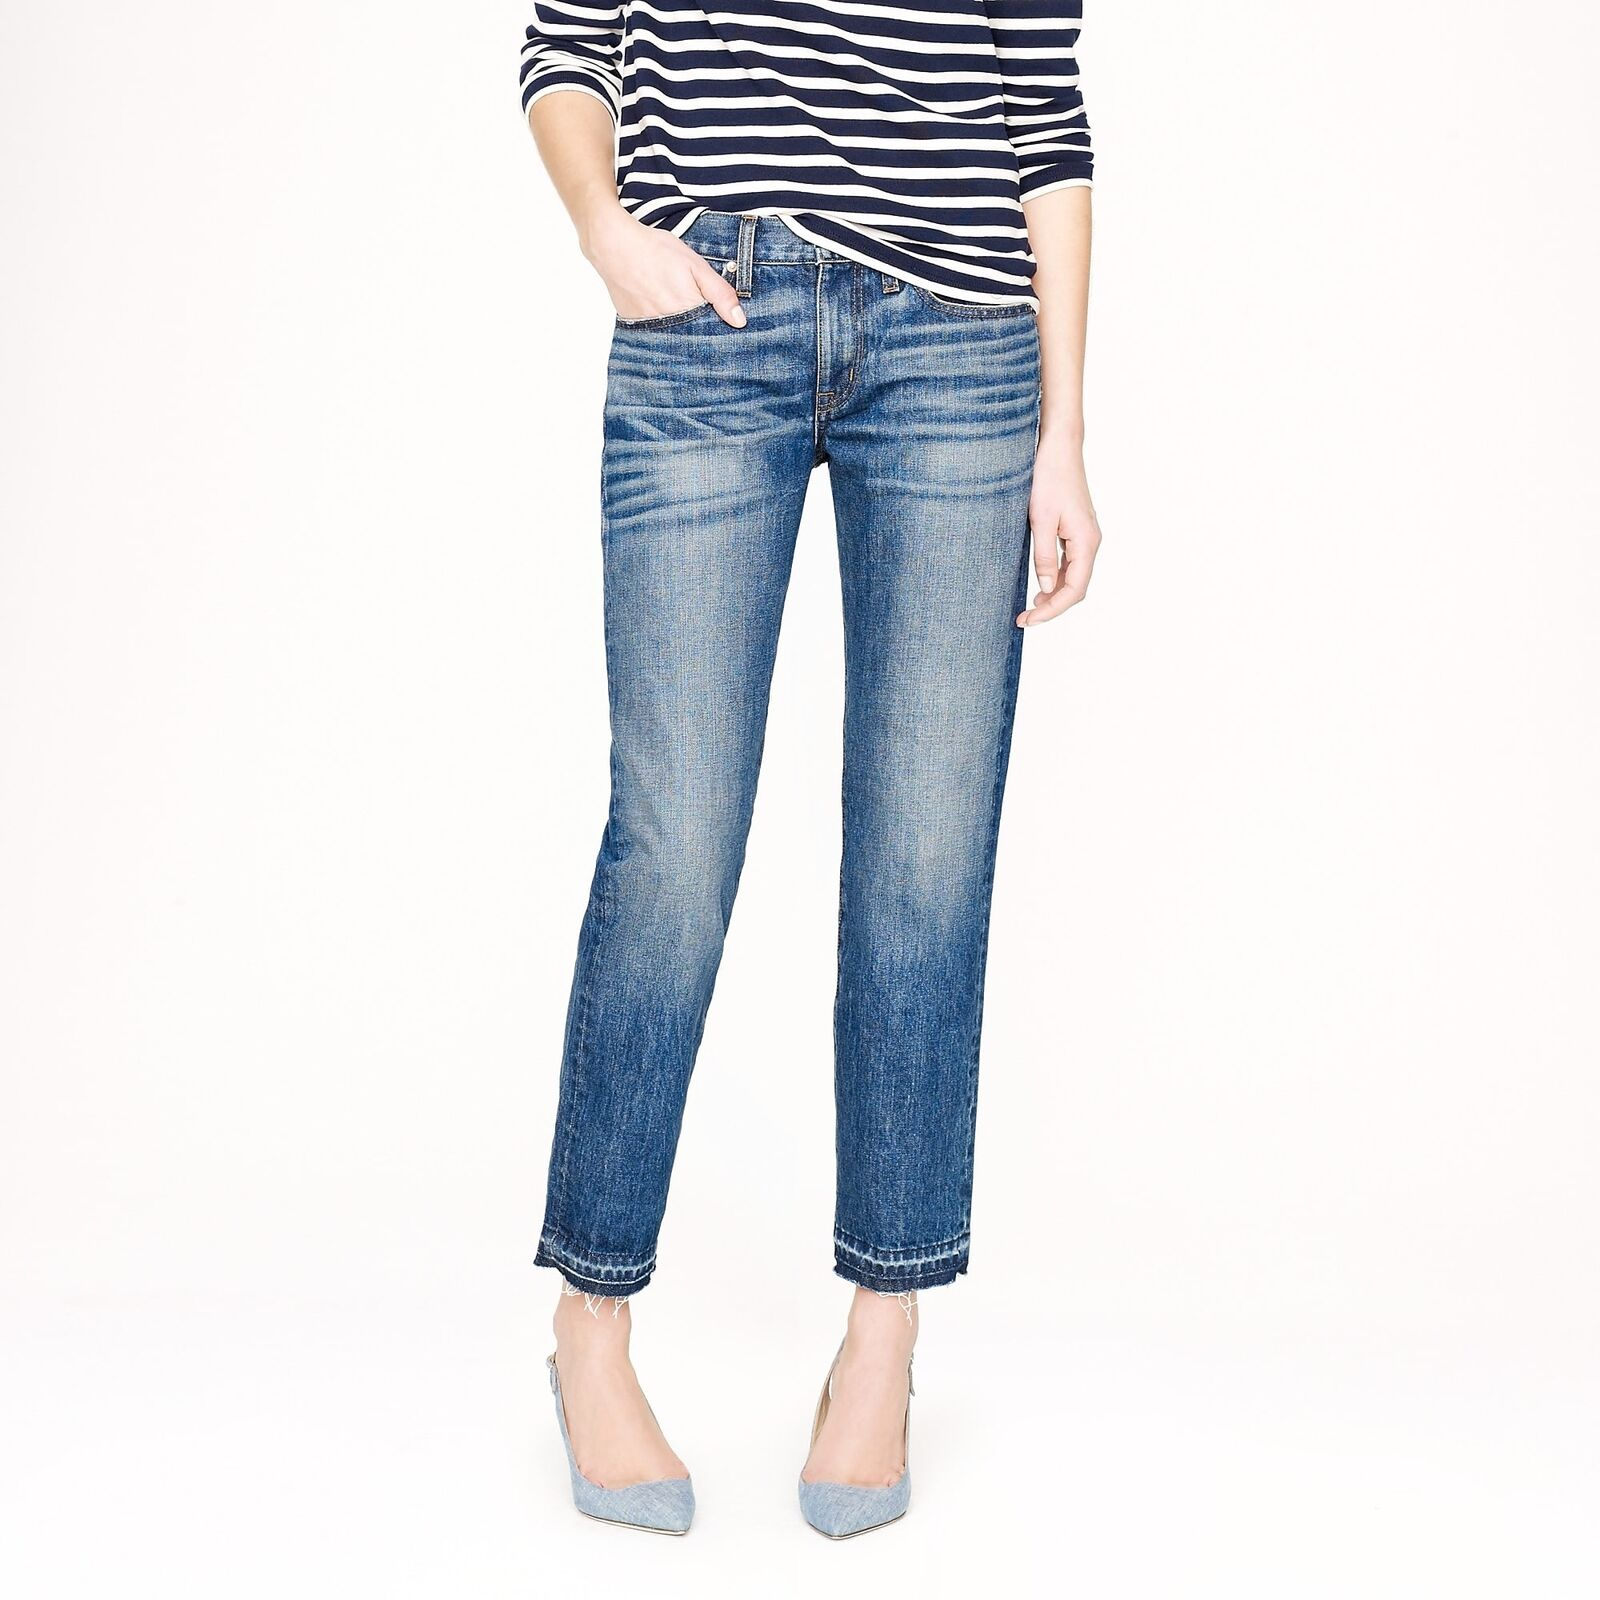 NWT J. Crew Point Sur vintage cropped jean in griffin wash size 25